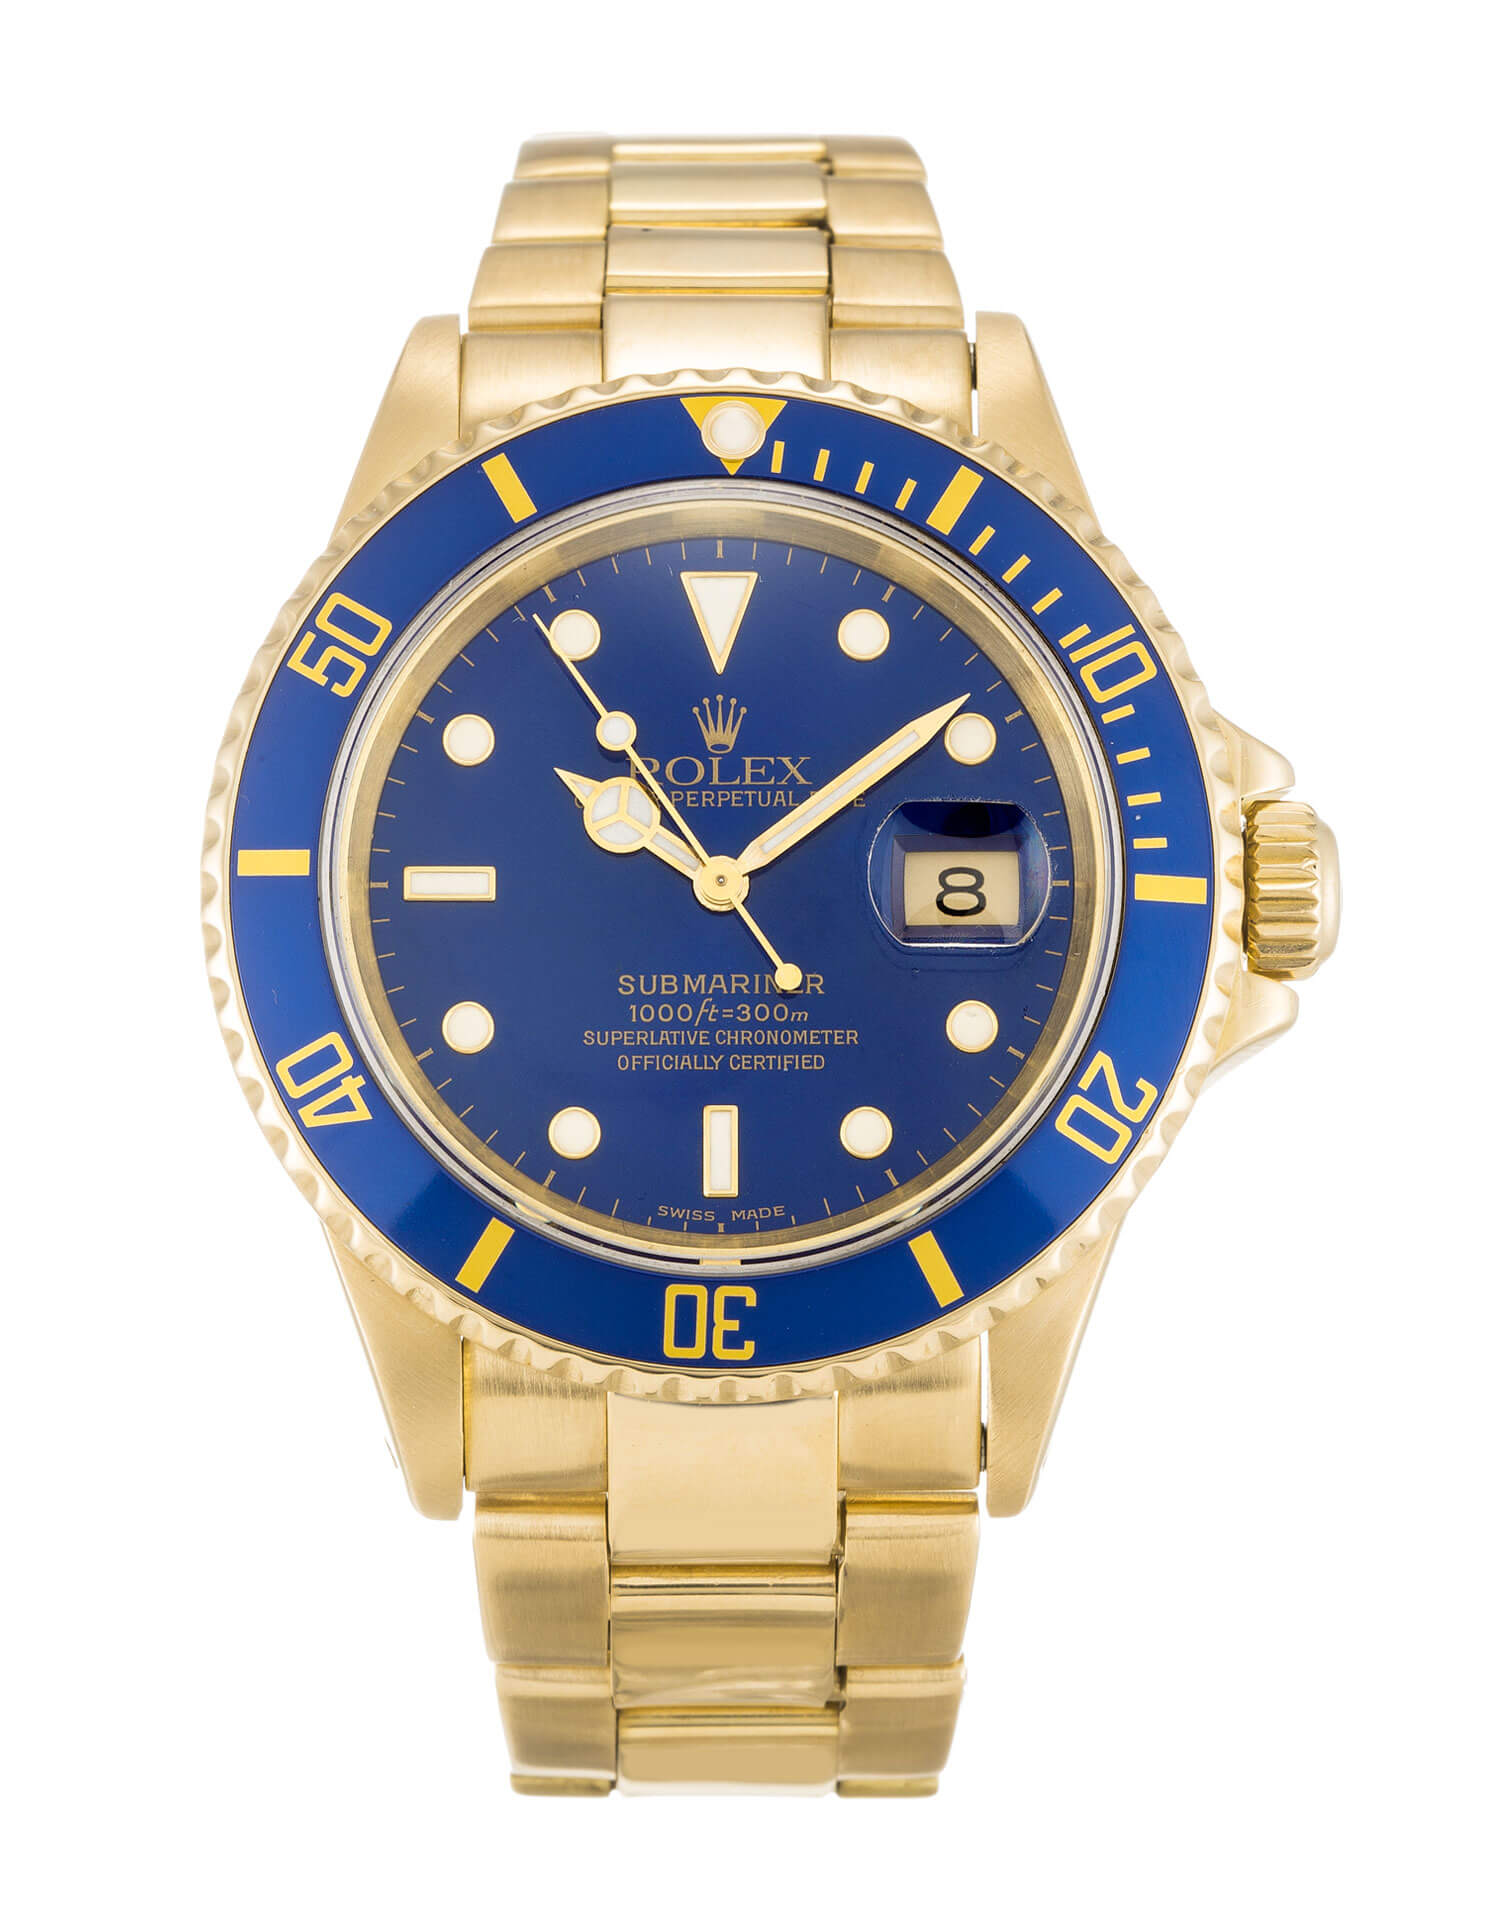 Replica Rolex Submariner 18k Gold Blue dial Ceramic Bezel